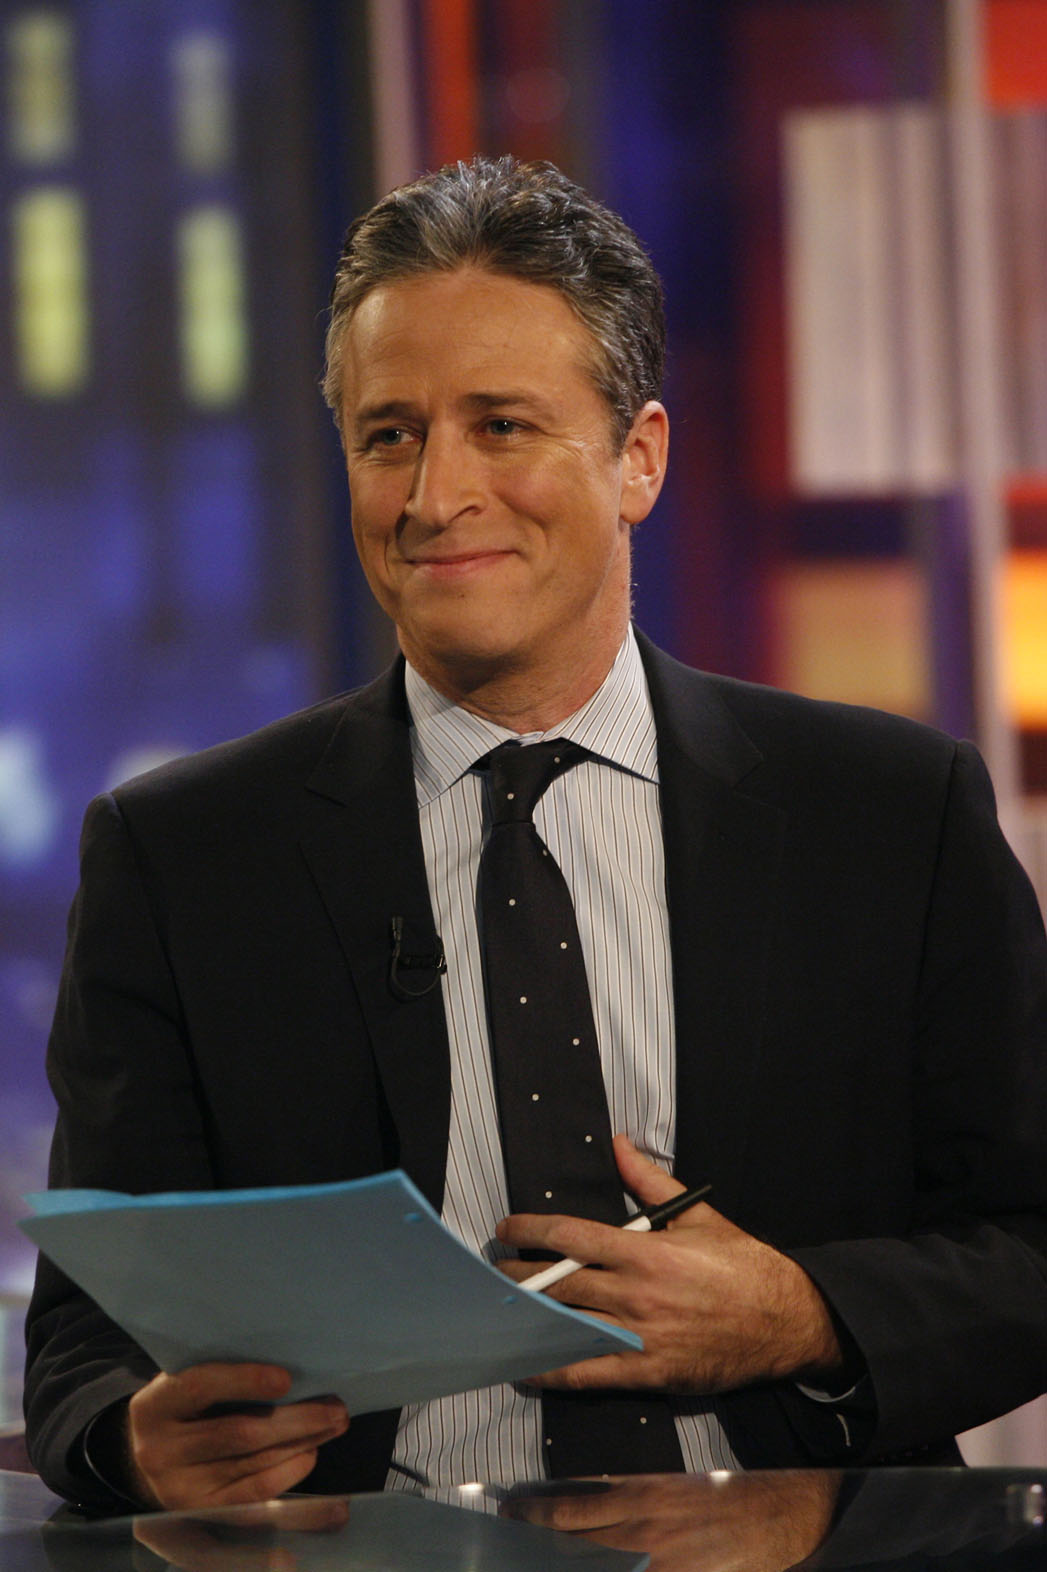 Jon Stewart The Daily Show - P 2013